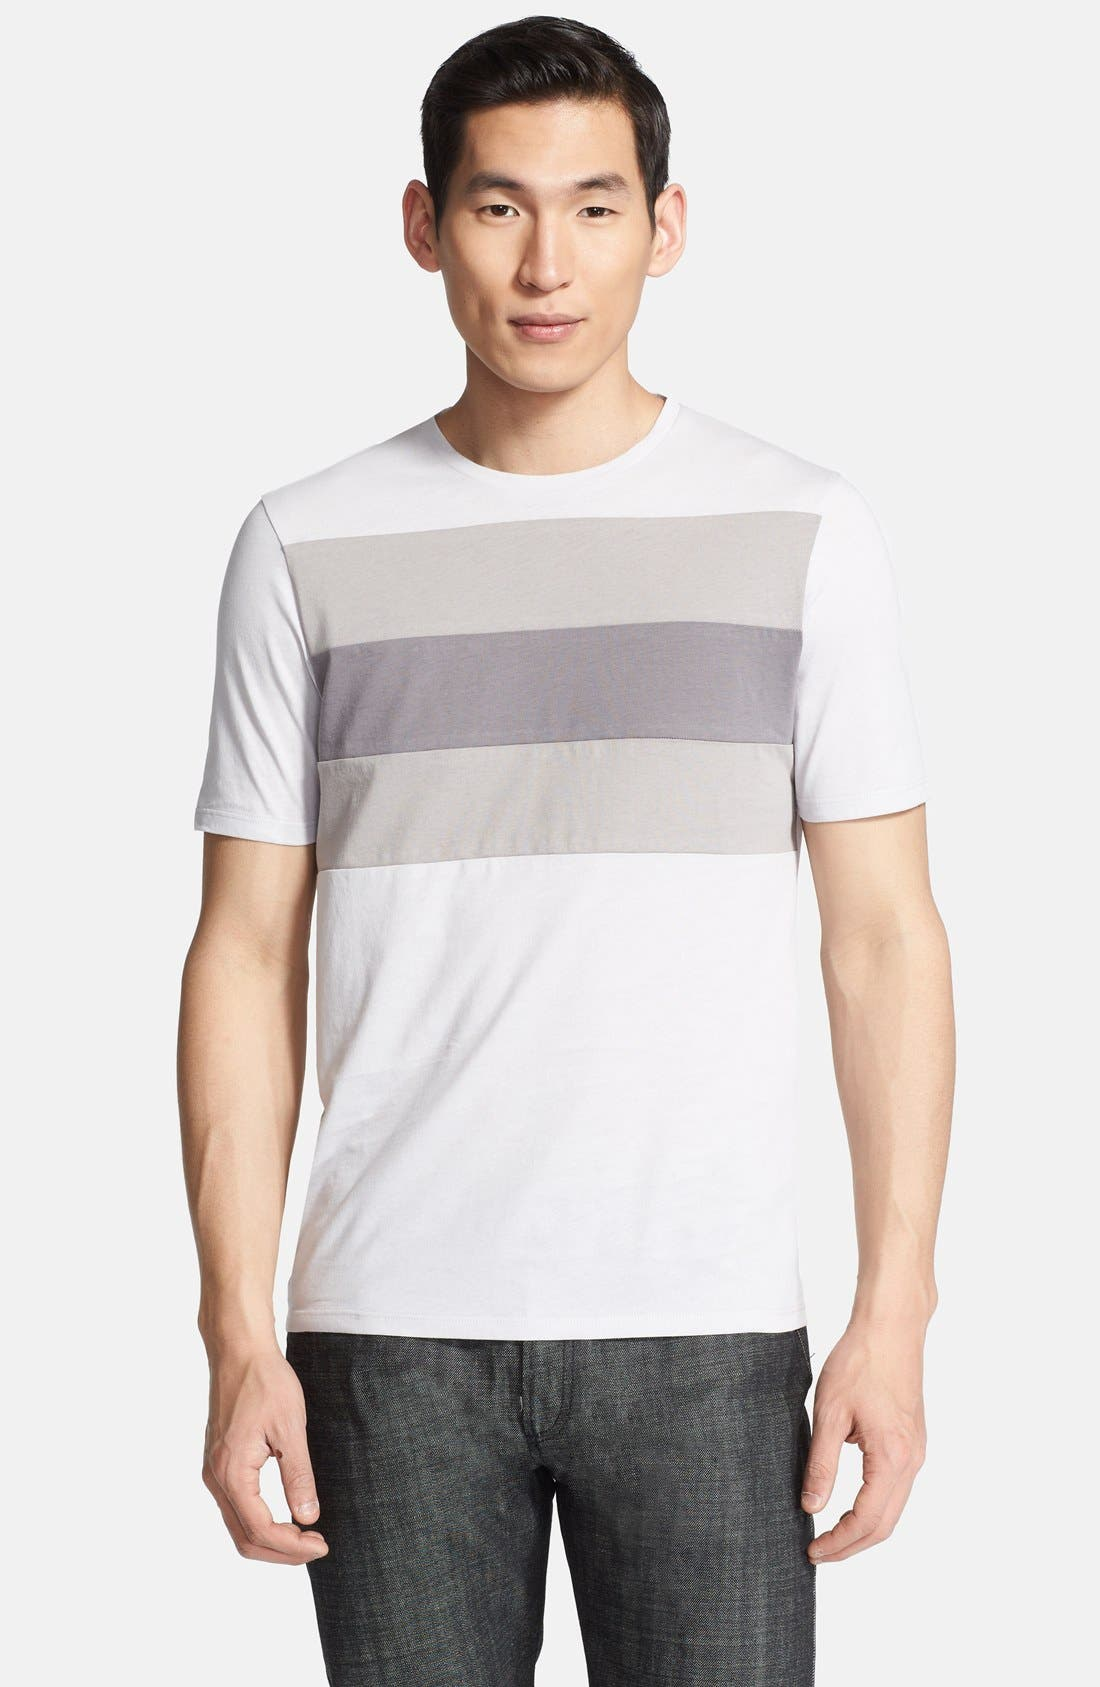 Alternate Image 1 Selected - Z Zegna Colorblock Chest Crewneck T-Shirt